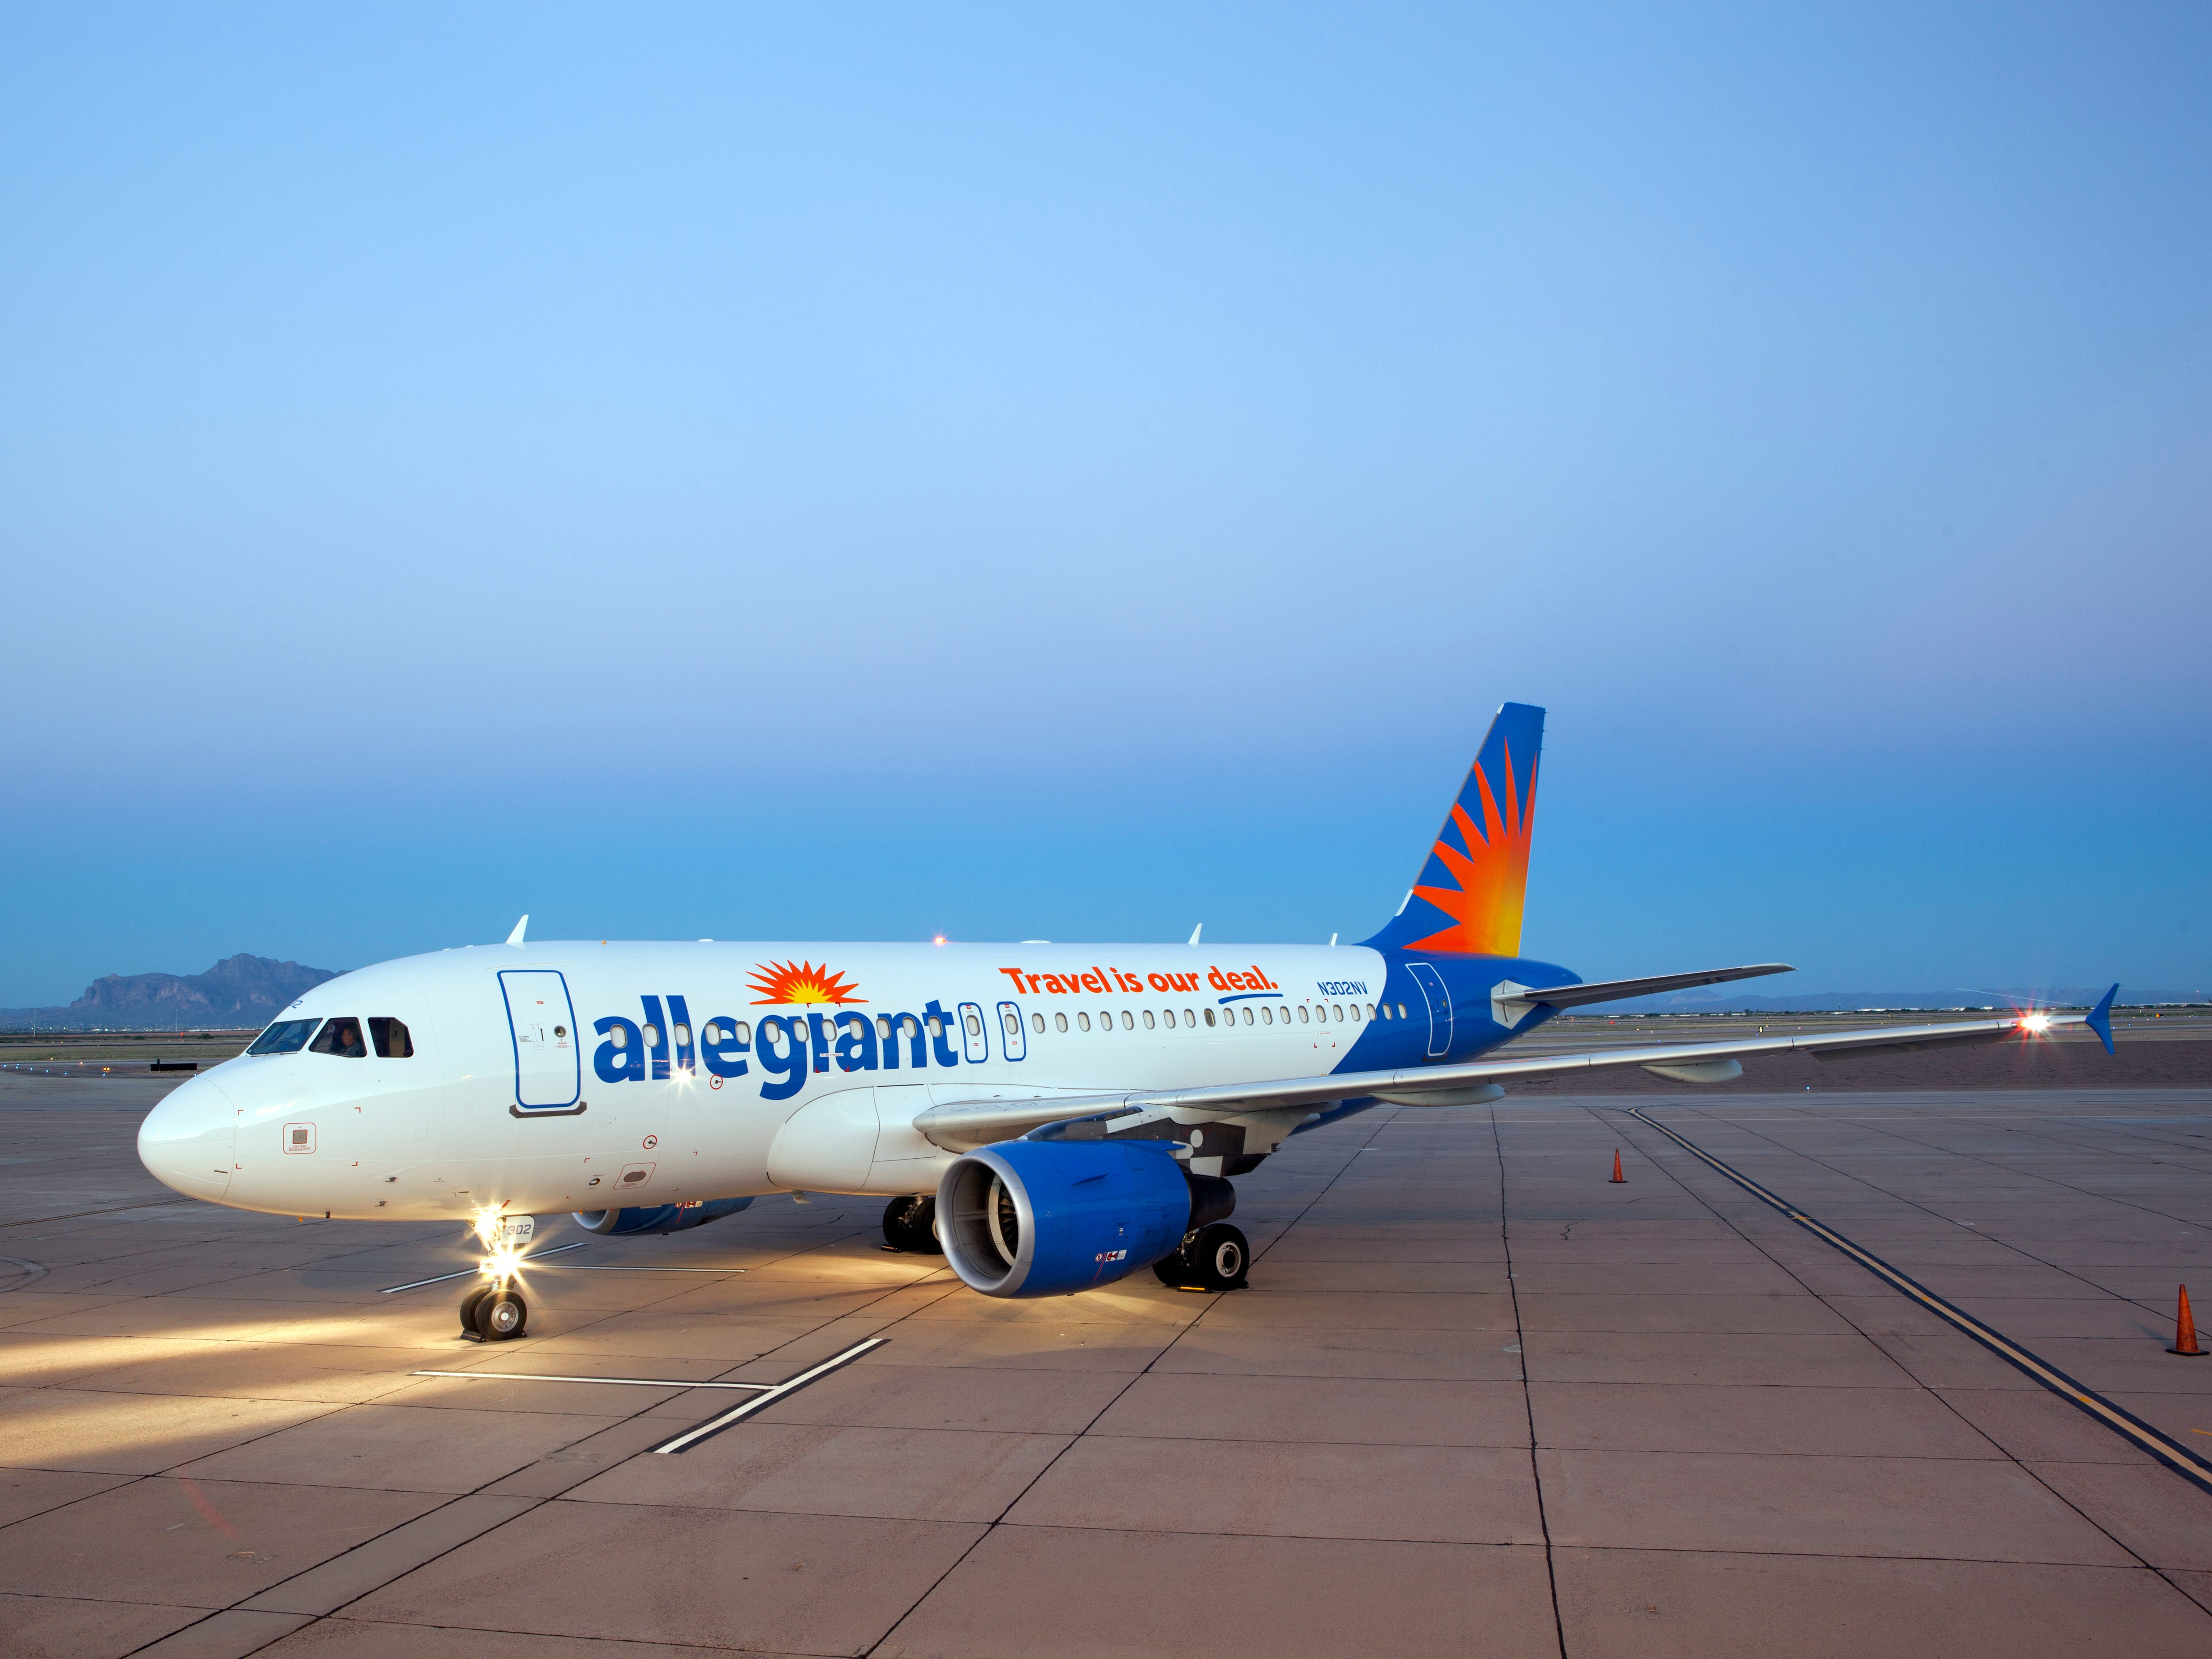 January route roundup: Where airlines are adding, and cutting, service